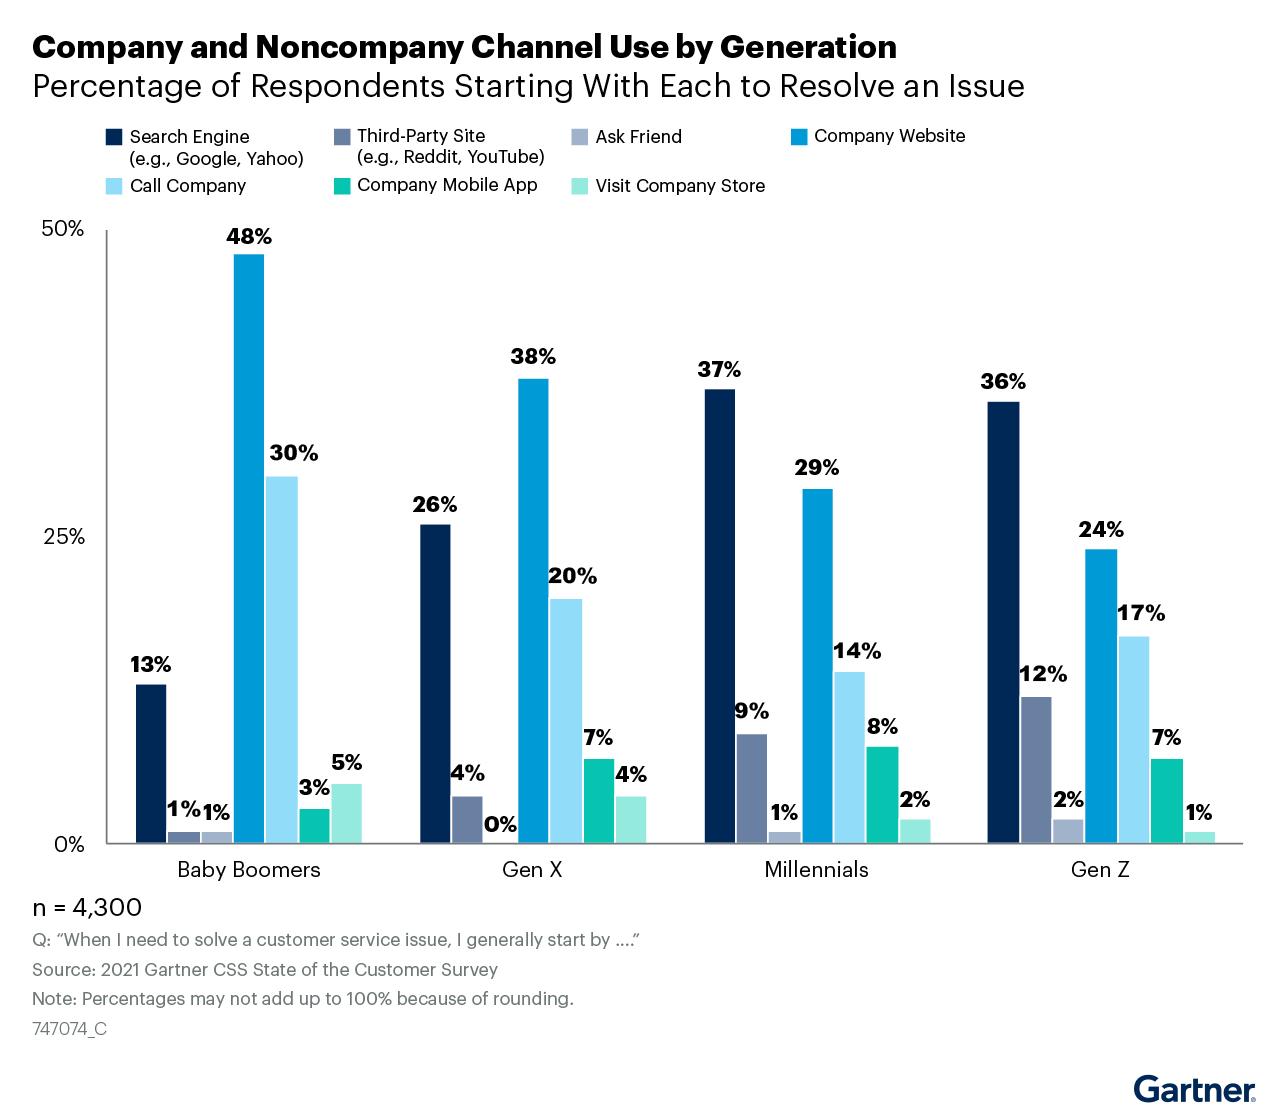 Bar chart showing which channel customers across generations would typically use to begin their issue resolution journey.